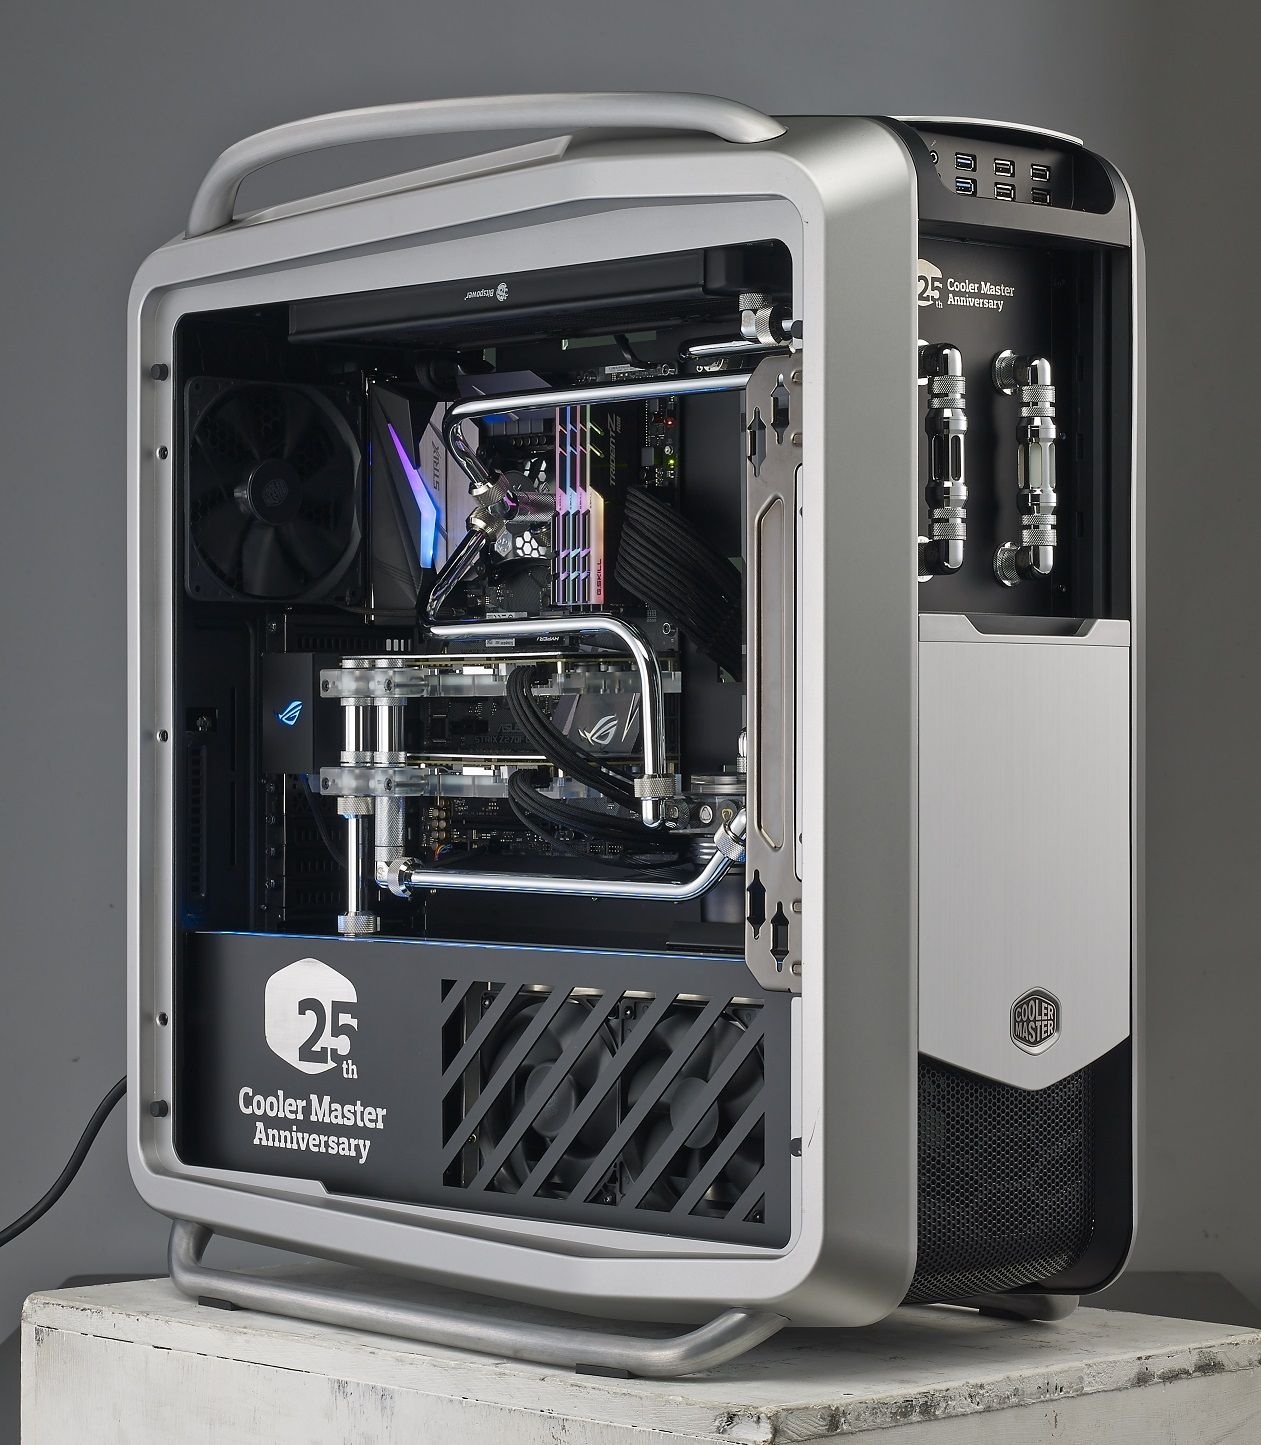 Case Mod Friday: Cosmos II 25th Anniversary Edition | Computer Hardware Reviews - ThinkComputers.org